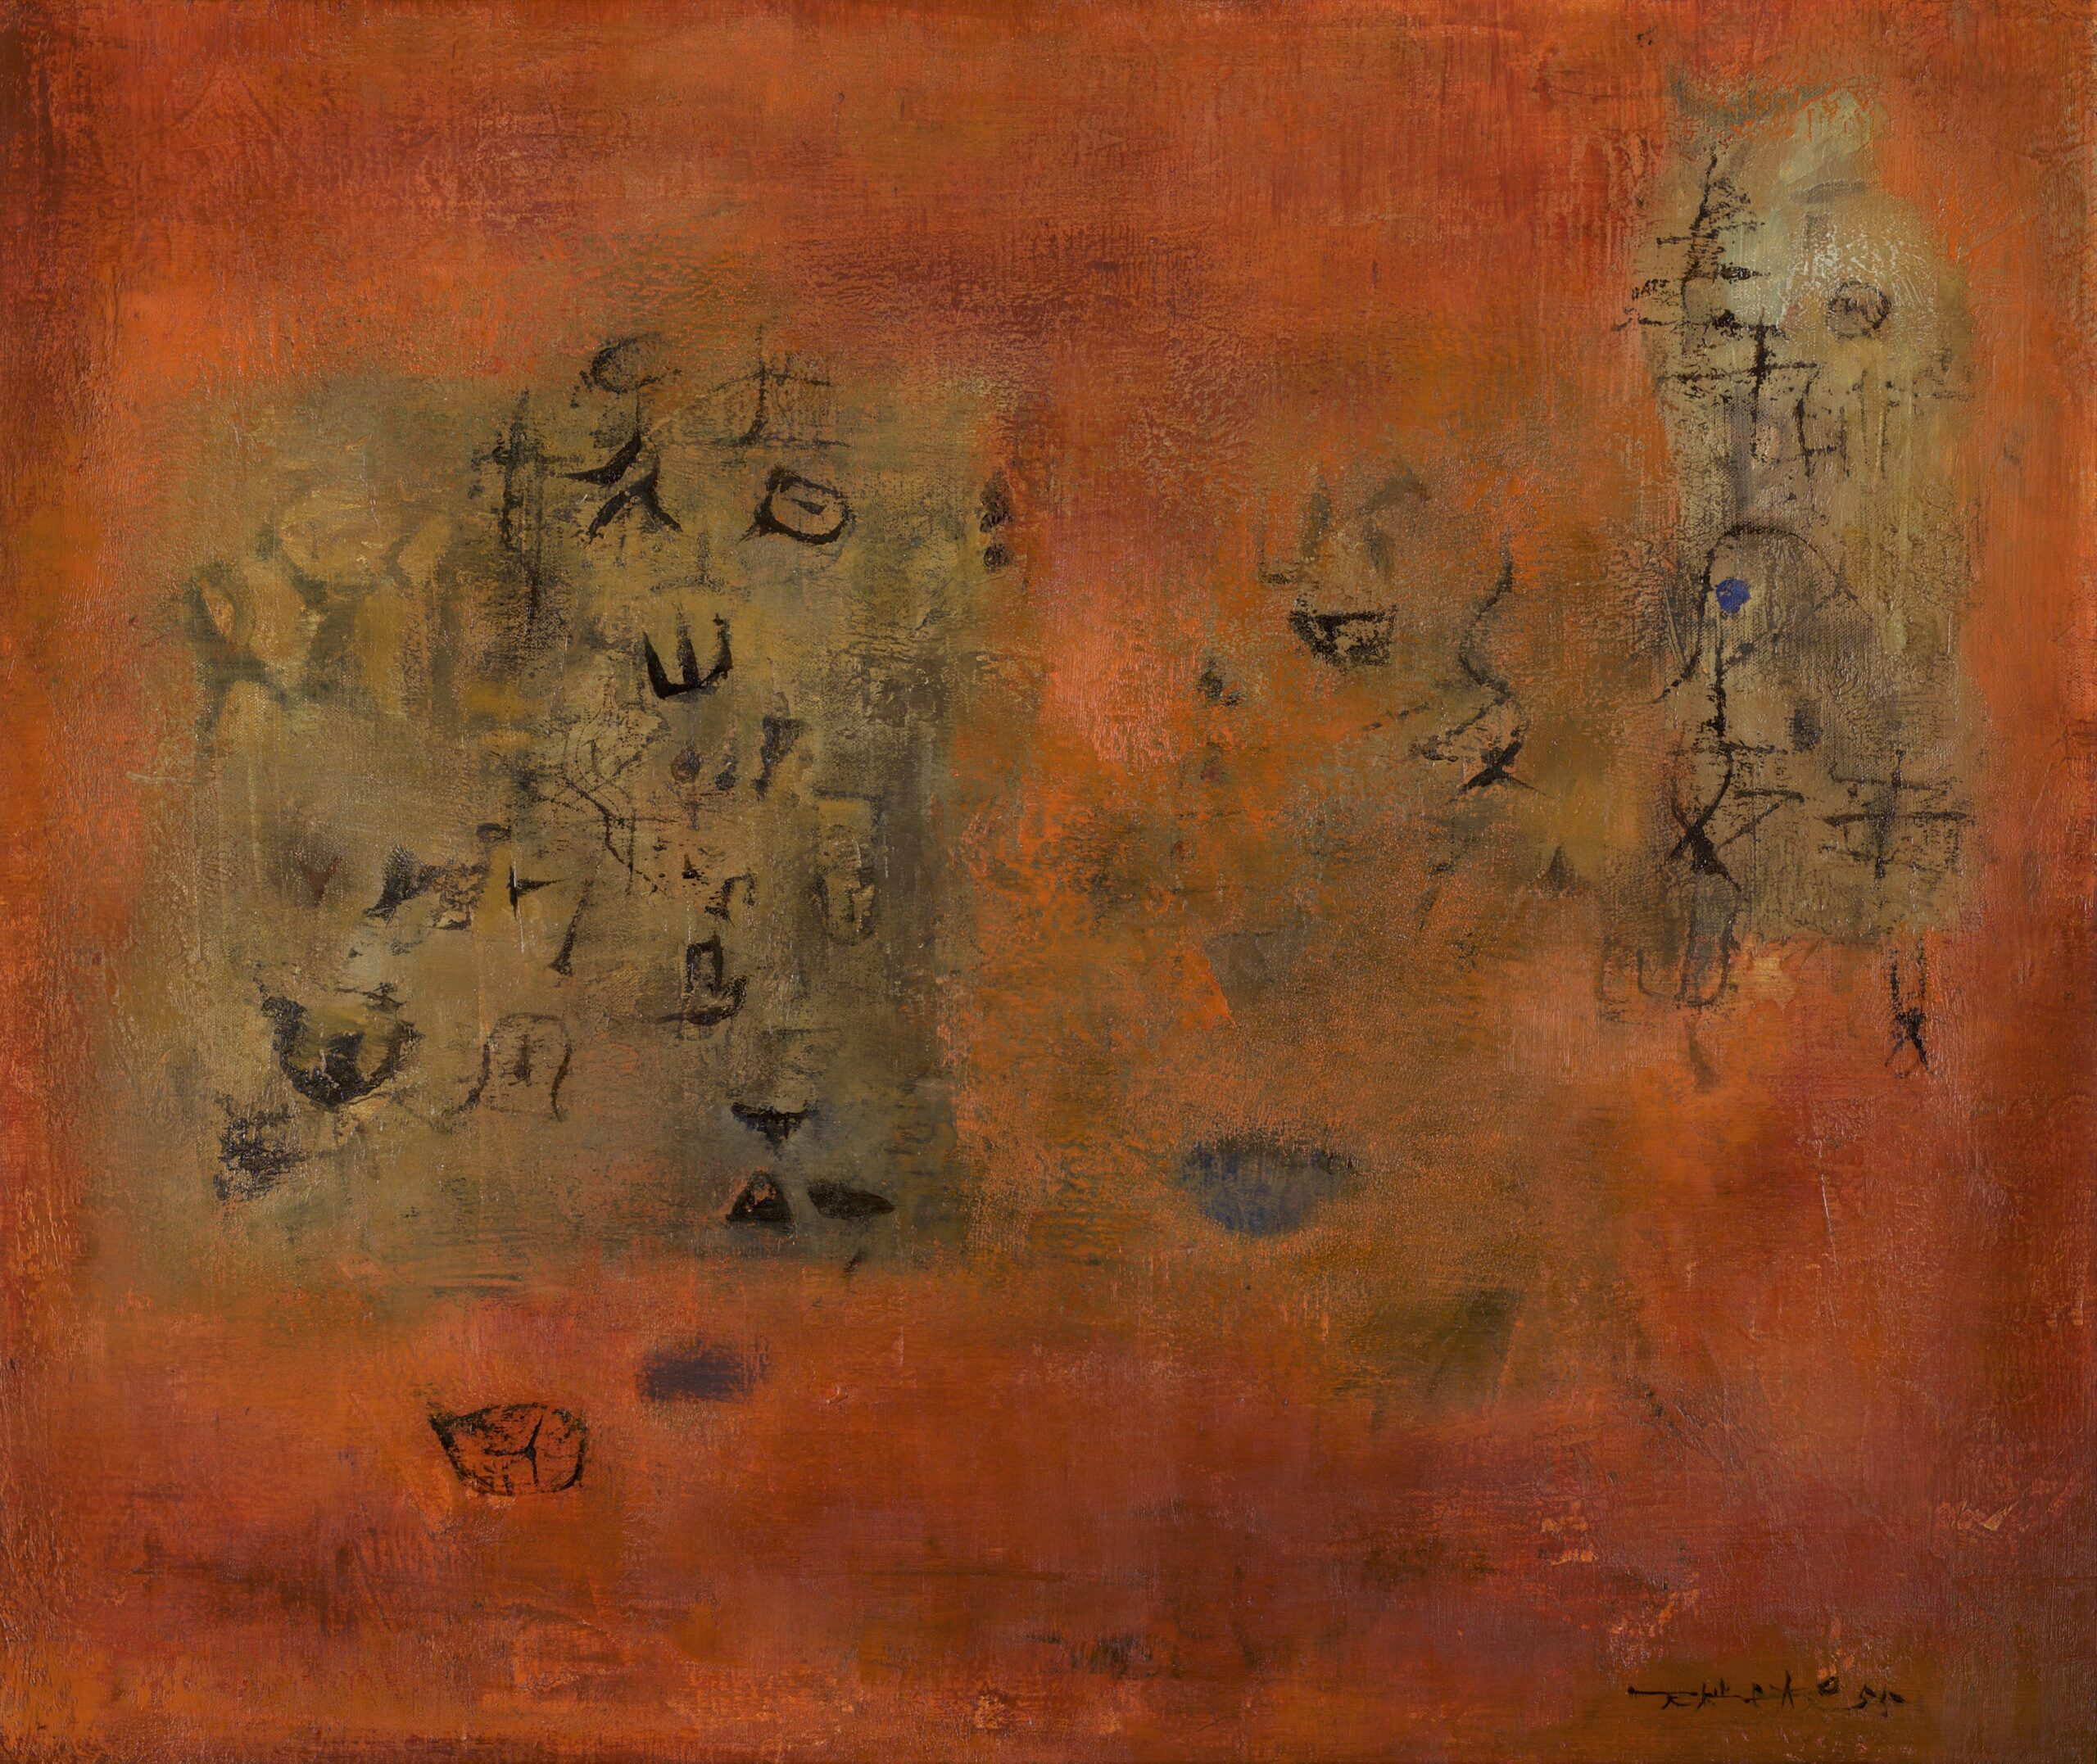 Zao Wou-Ki, Les attiseurs, 1955 Signed and dated lower right Certificate of authenticity by the Zao Wou-Ki Foundation Oil on canvas 46 x 55 cm